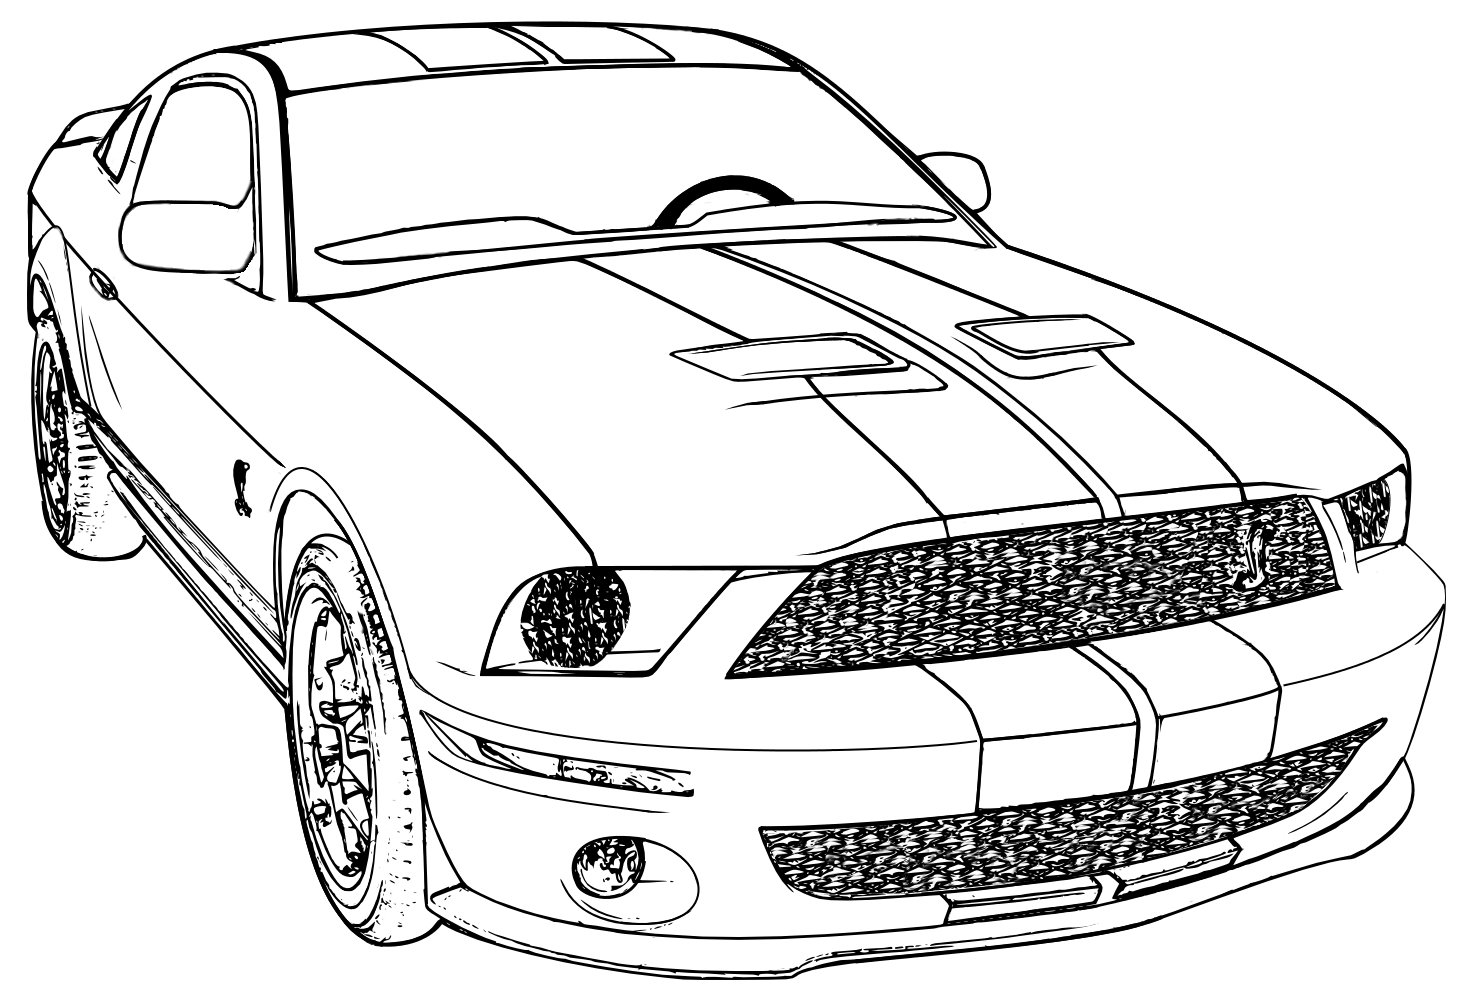 Mustang Coloring Pages isolution to Print Of Super Car ford Mustang Coloring Page Inspirational Mustang Download Printable